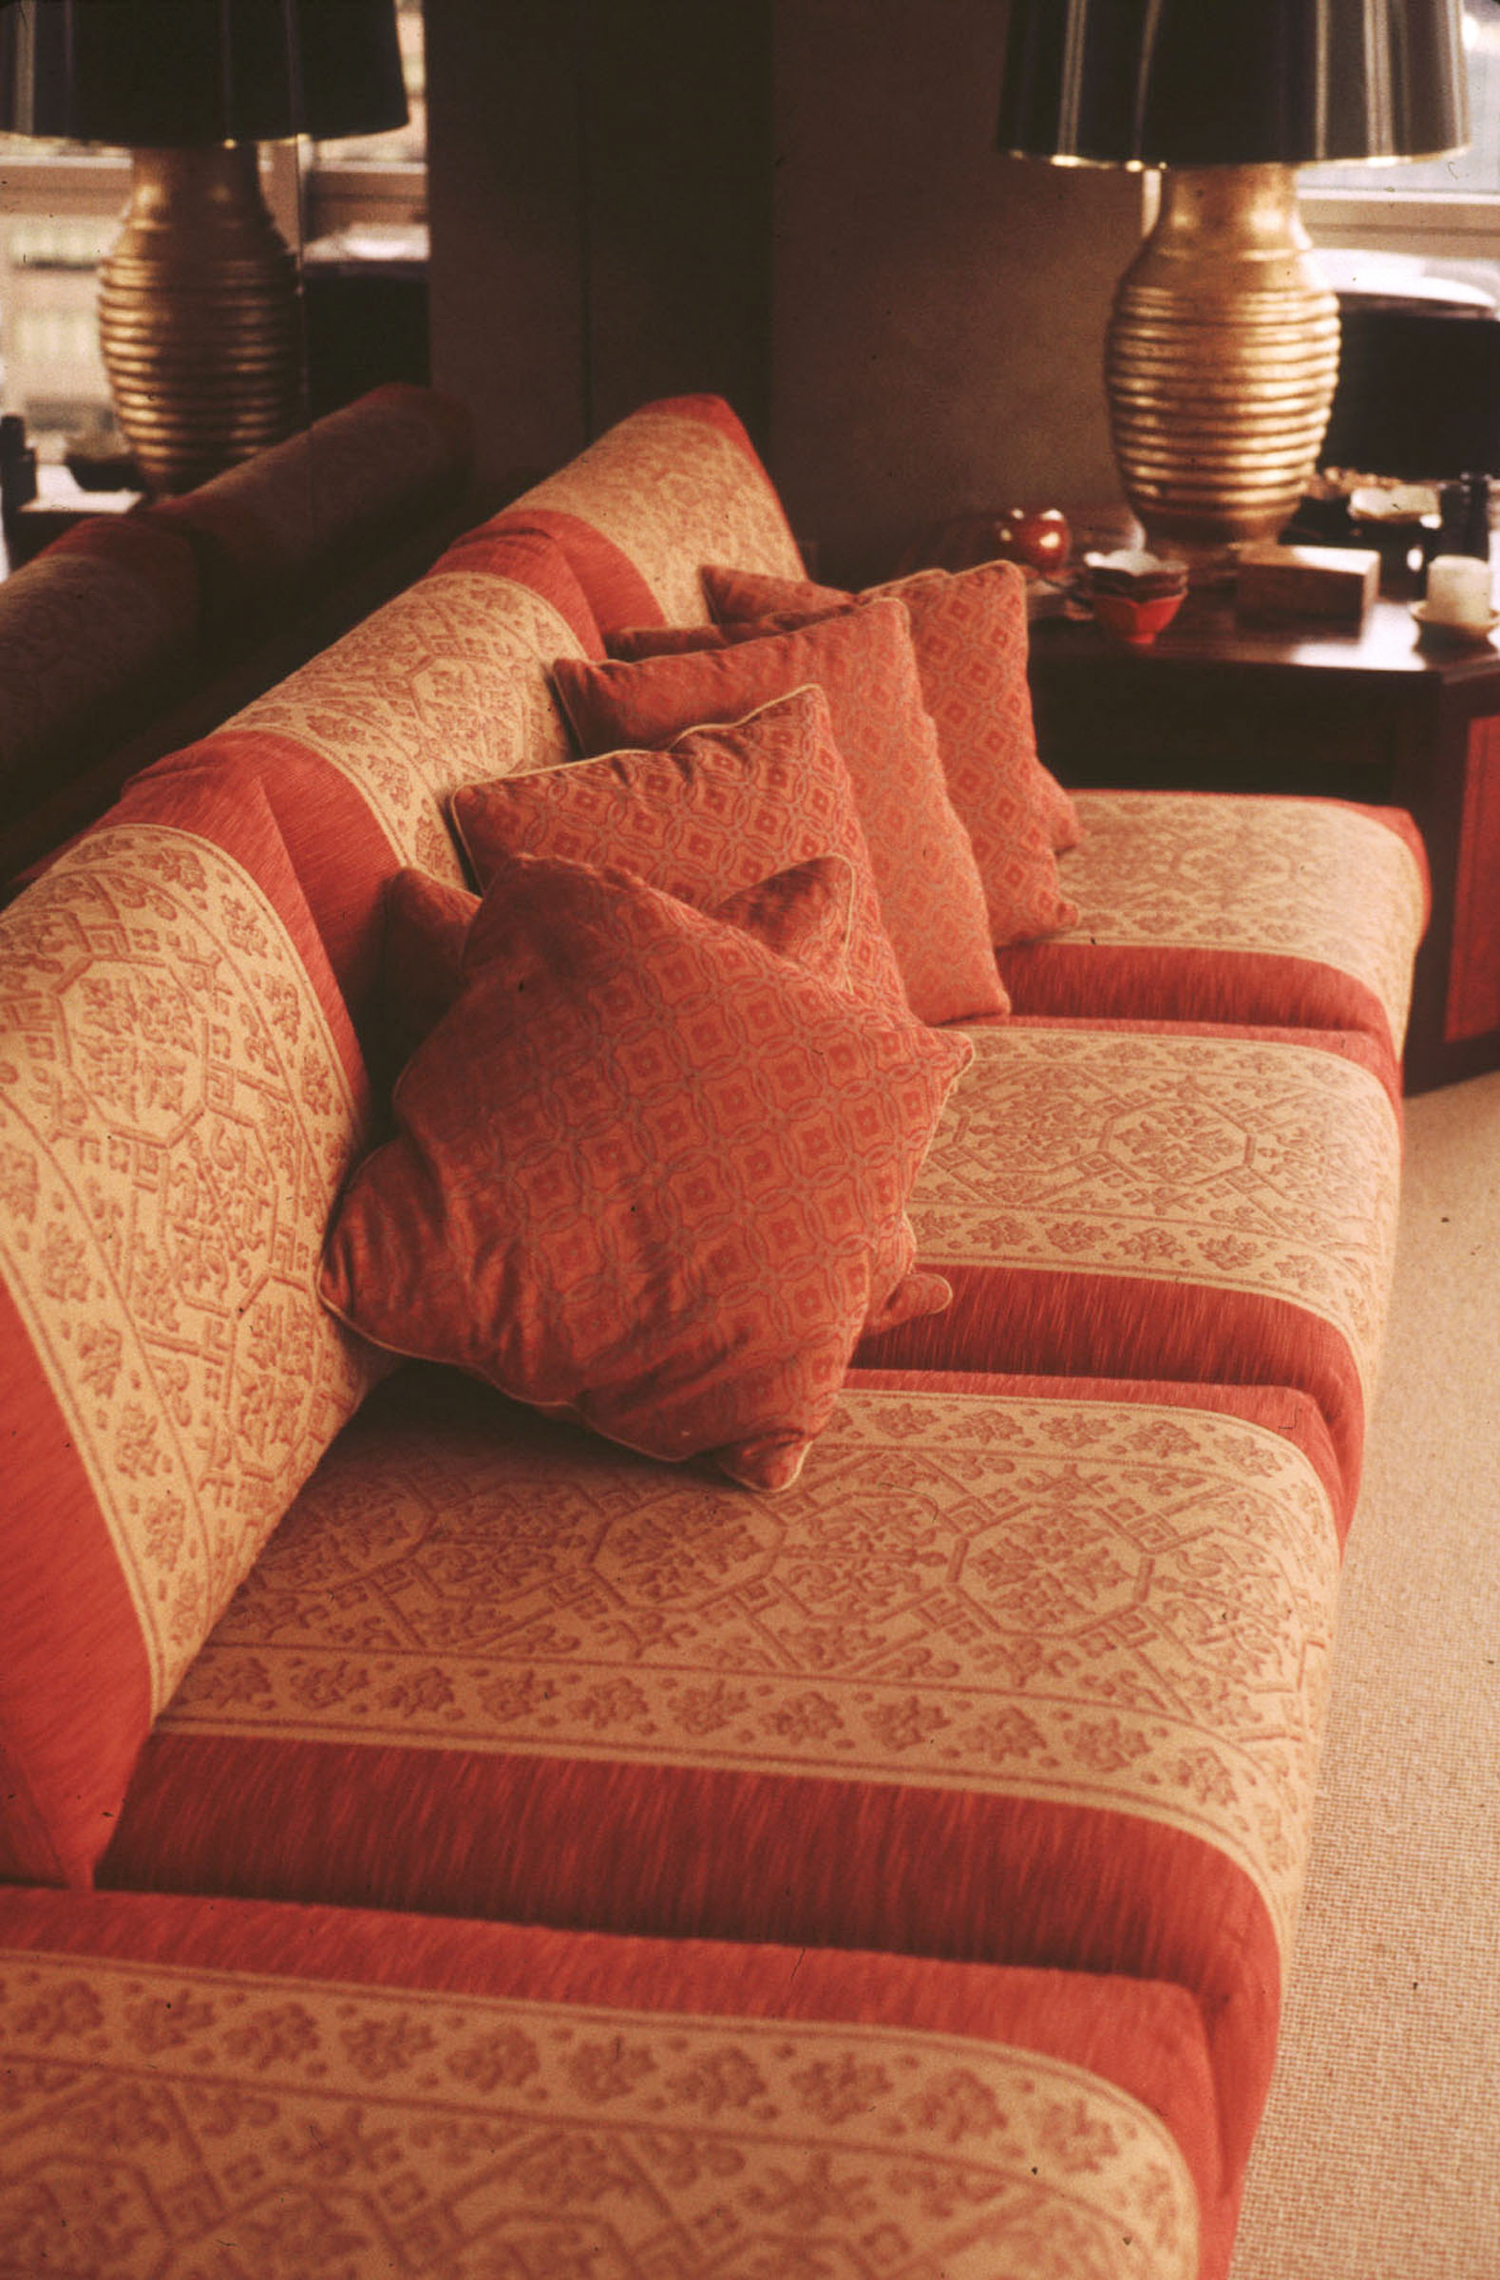 Sumbawa patterns on sofas